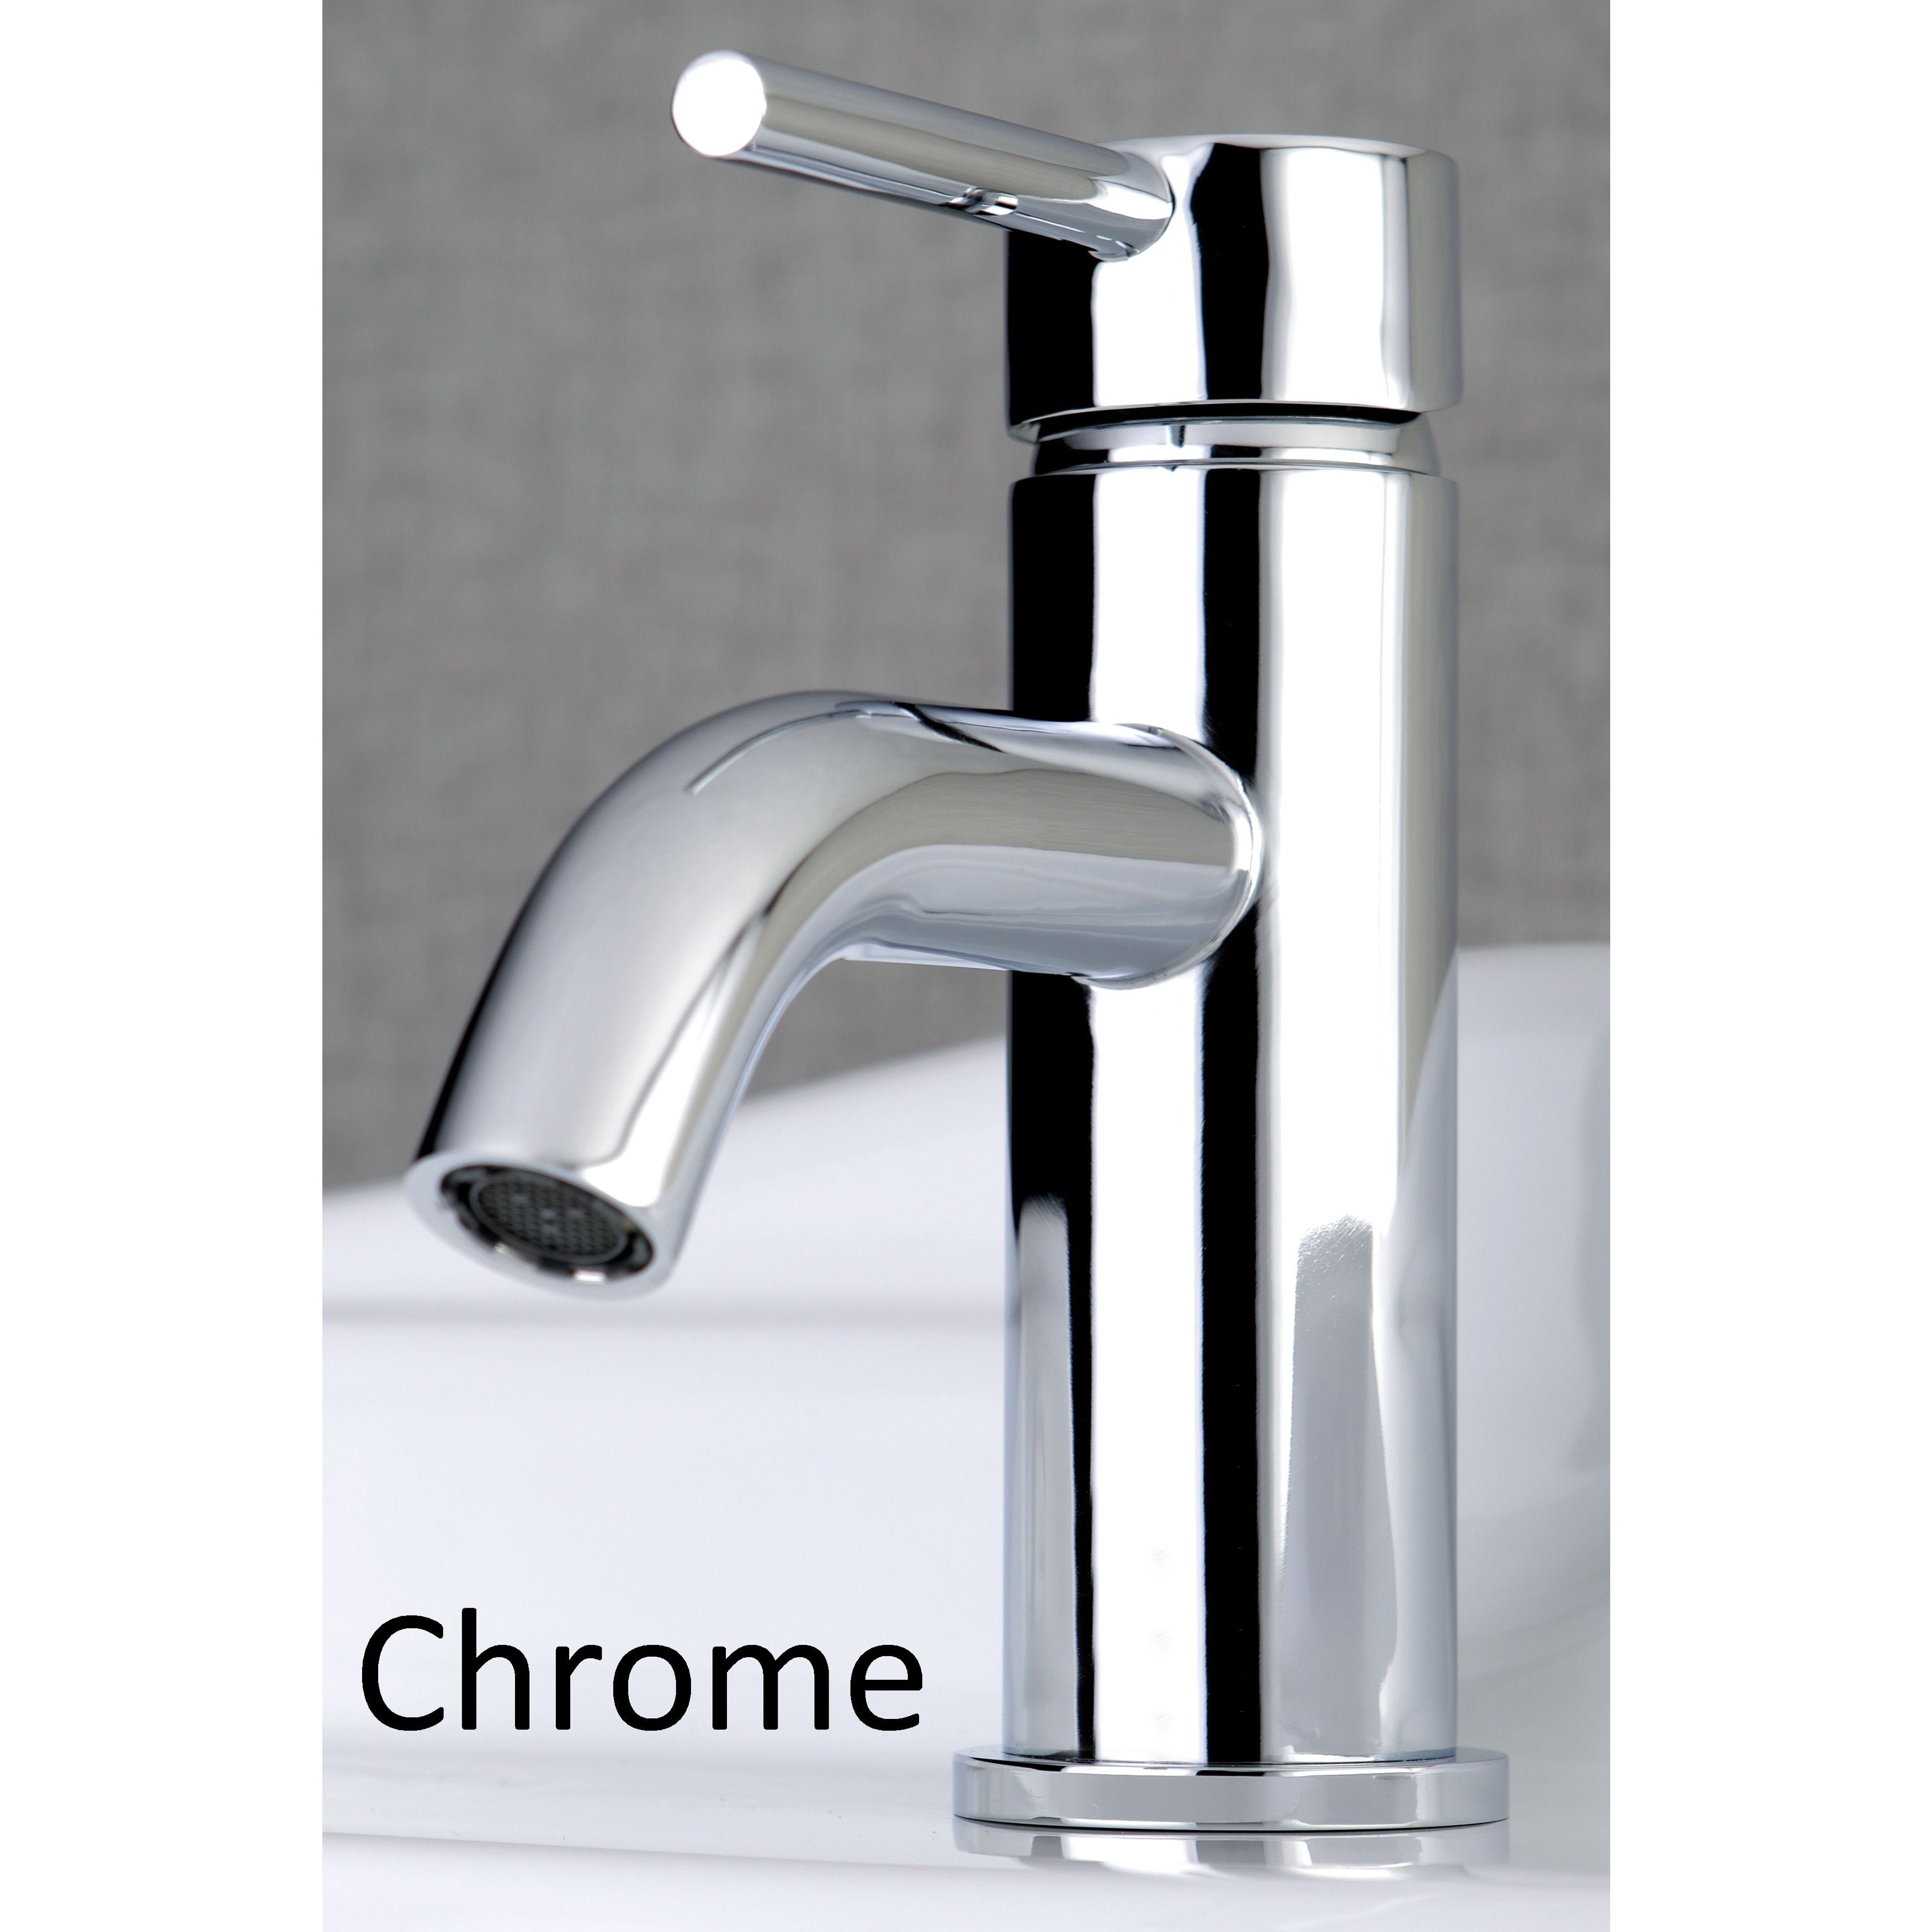 faucets hole worth faucet bathroom single kohler vibrant bathtub nickel k p handle in sink brushed bn